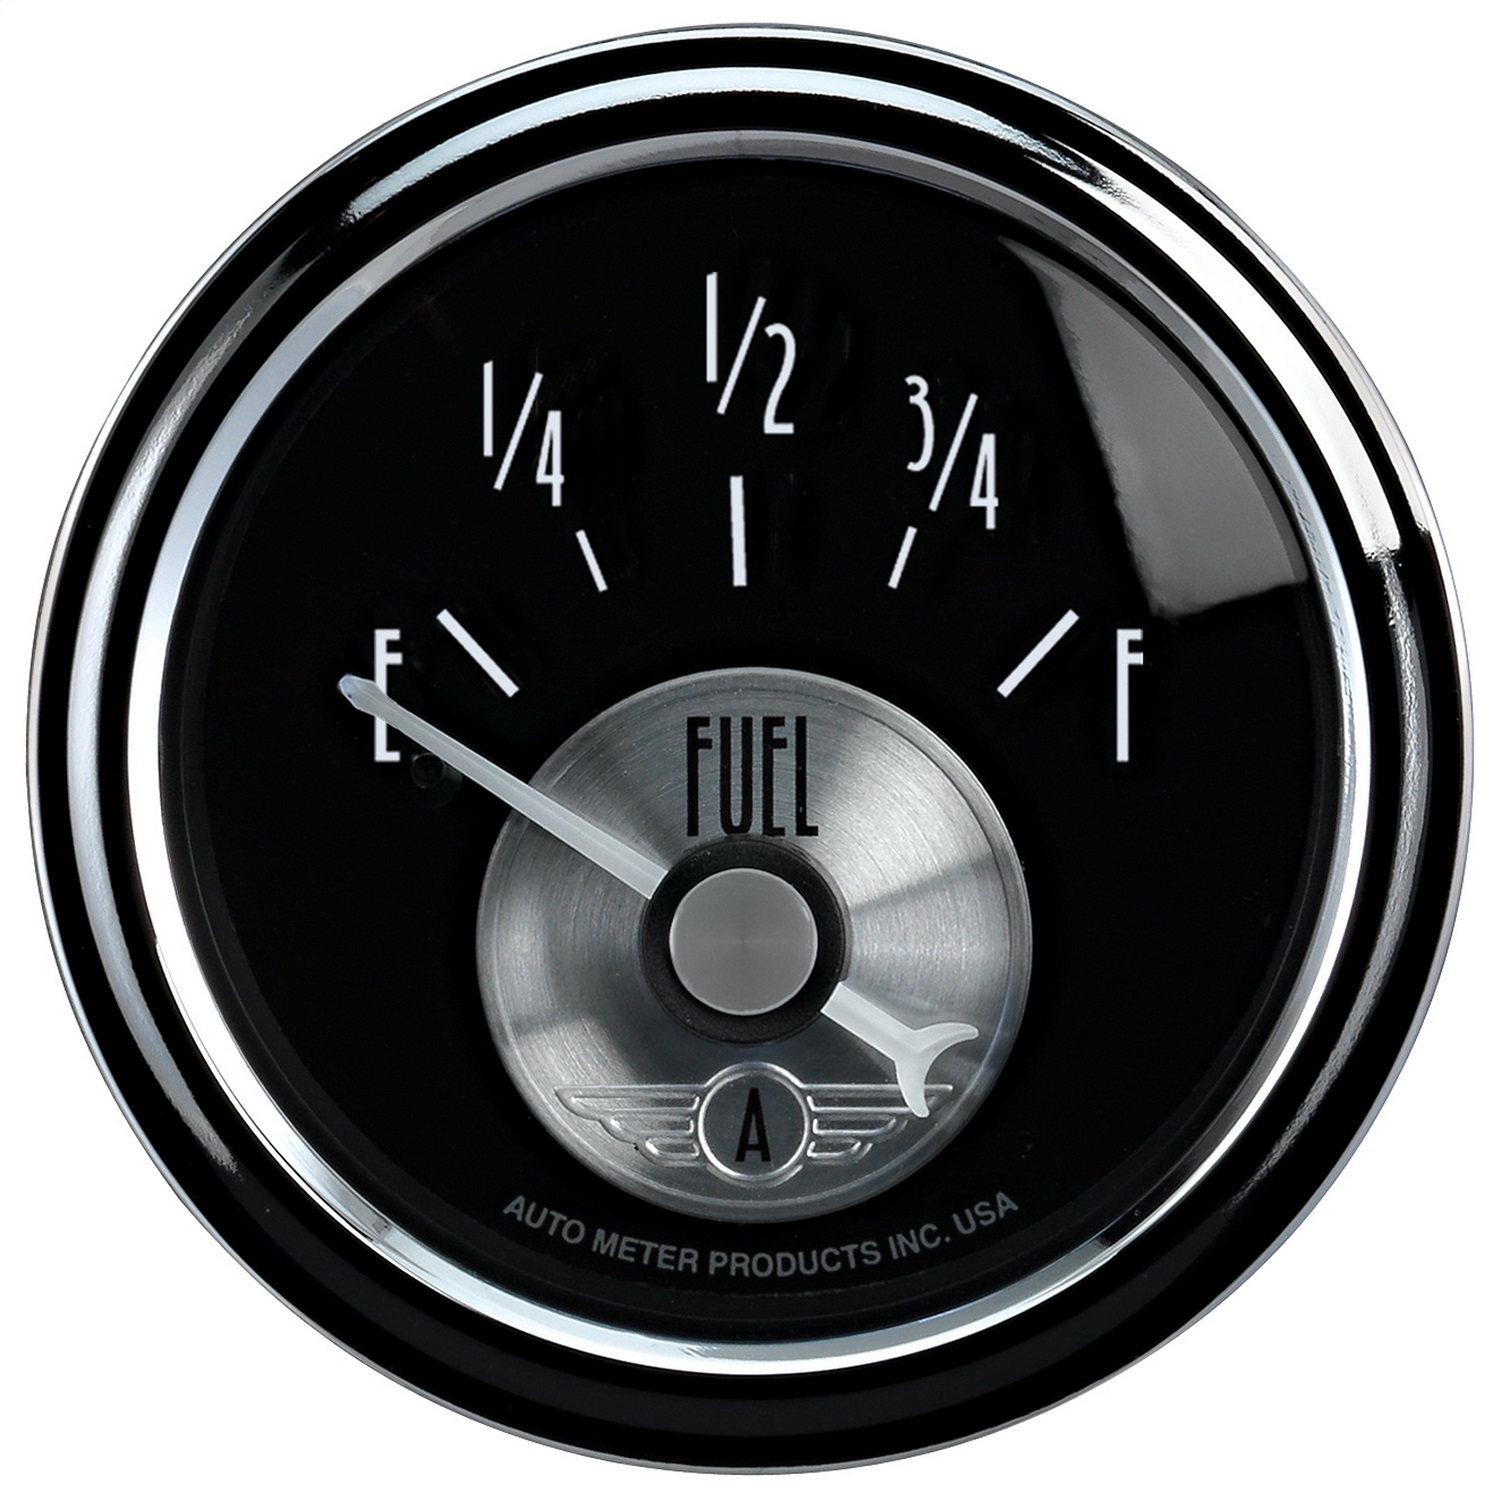 Auto Meter 2016 Prestige Series; Diamond Black; Fuel Level Gauge at Sears.com